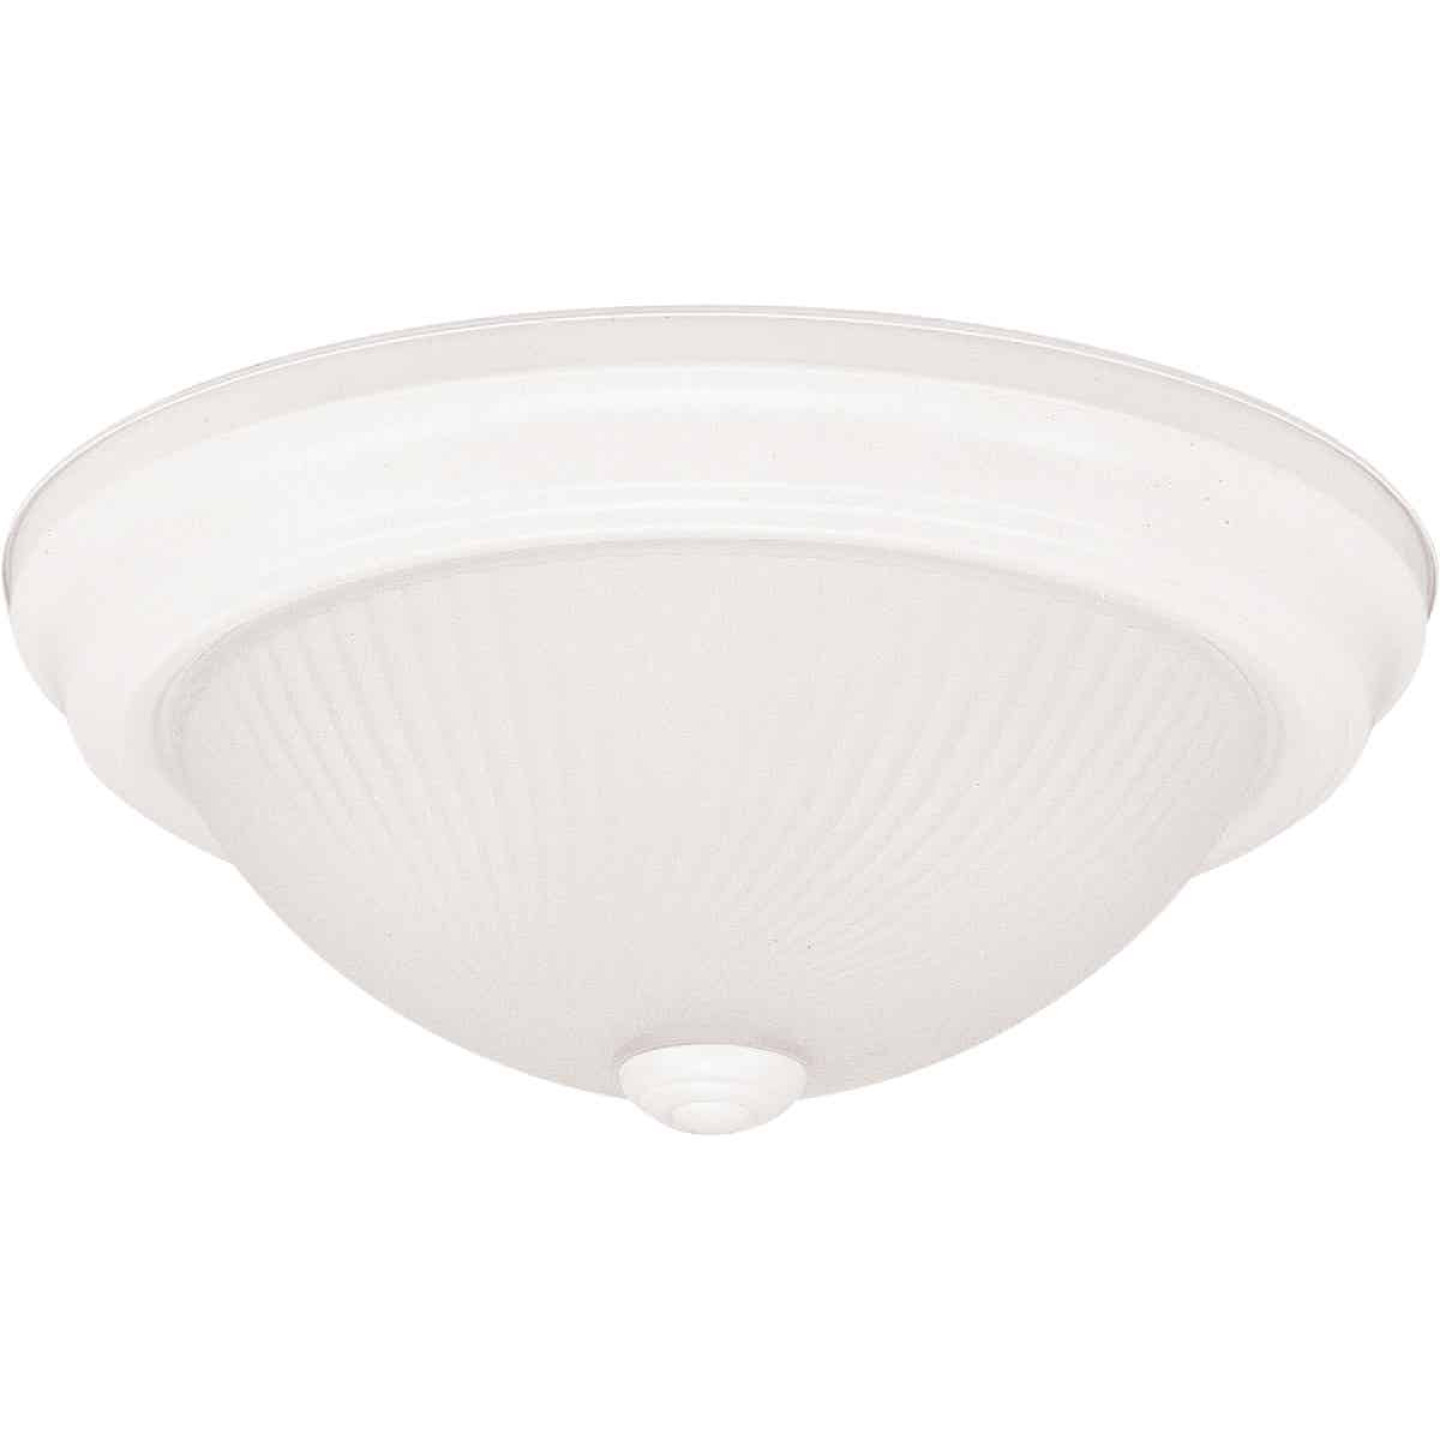 Home Impressions 13 In. White Incandescent Flush Mount Ceiling Light Fixture with Frosted Swirl Glass Image 1